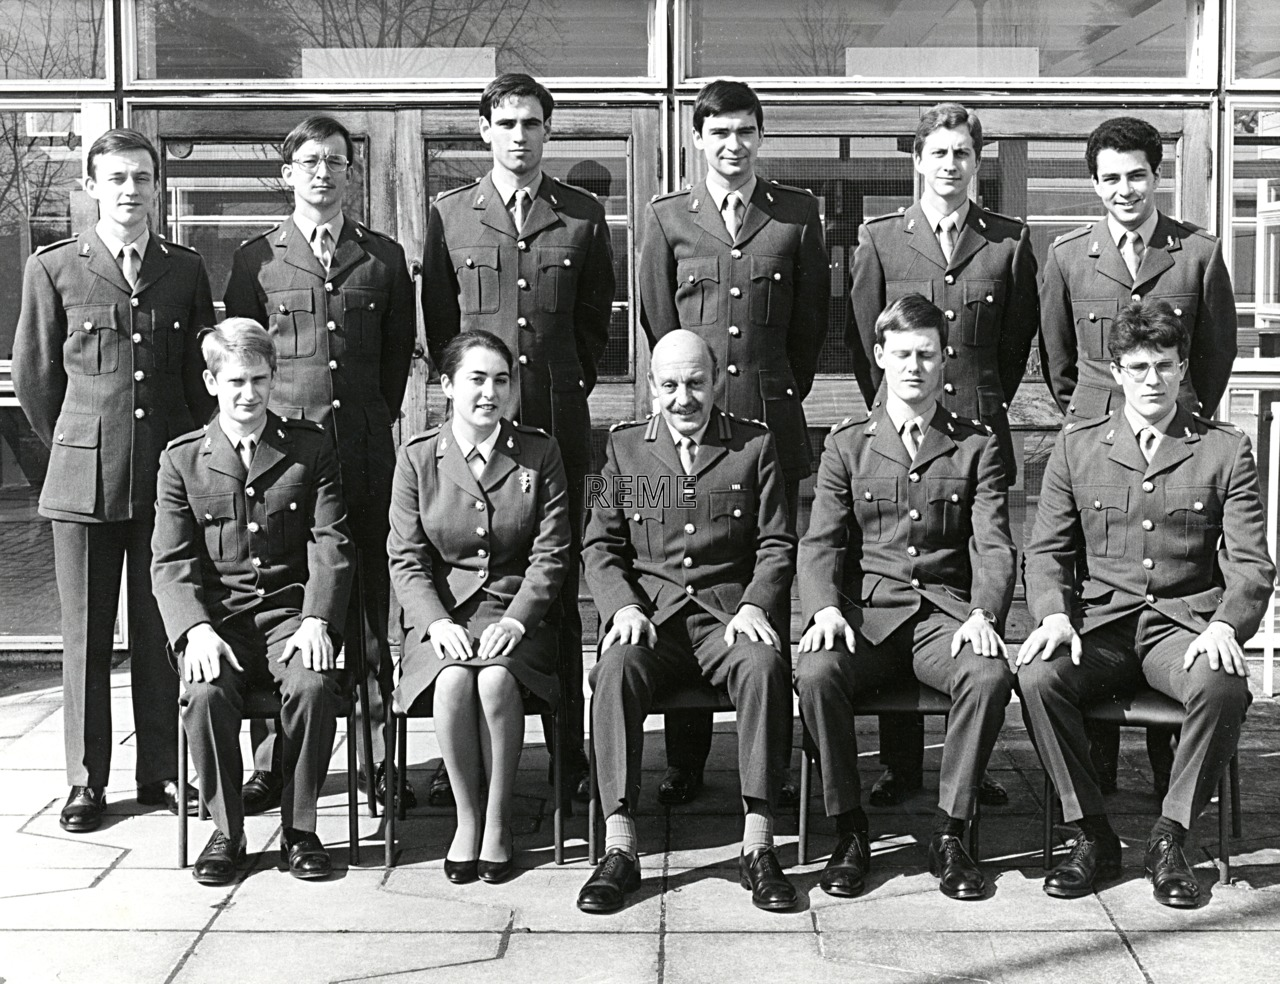 No 77 Regular Young Officers' Course, REME Officers' School, 1982